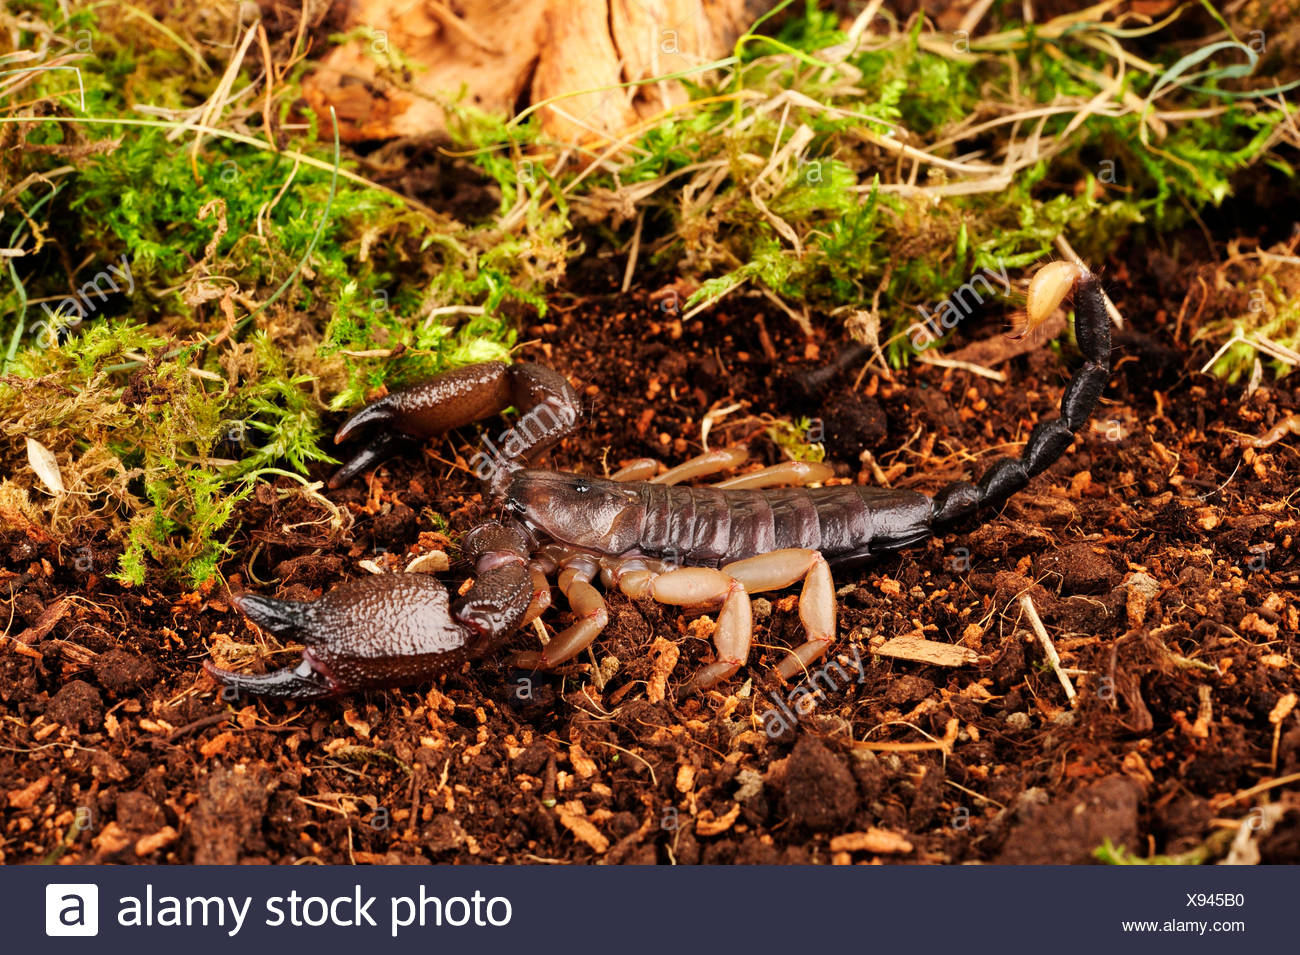 African scorpion (Opisthacanthus rugiceps), in defence posture - Stock Image